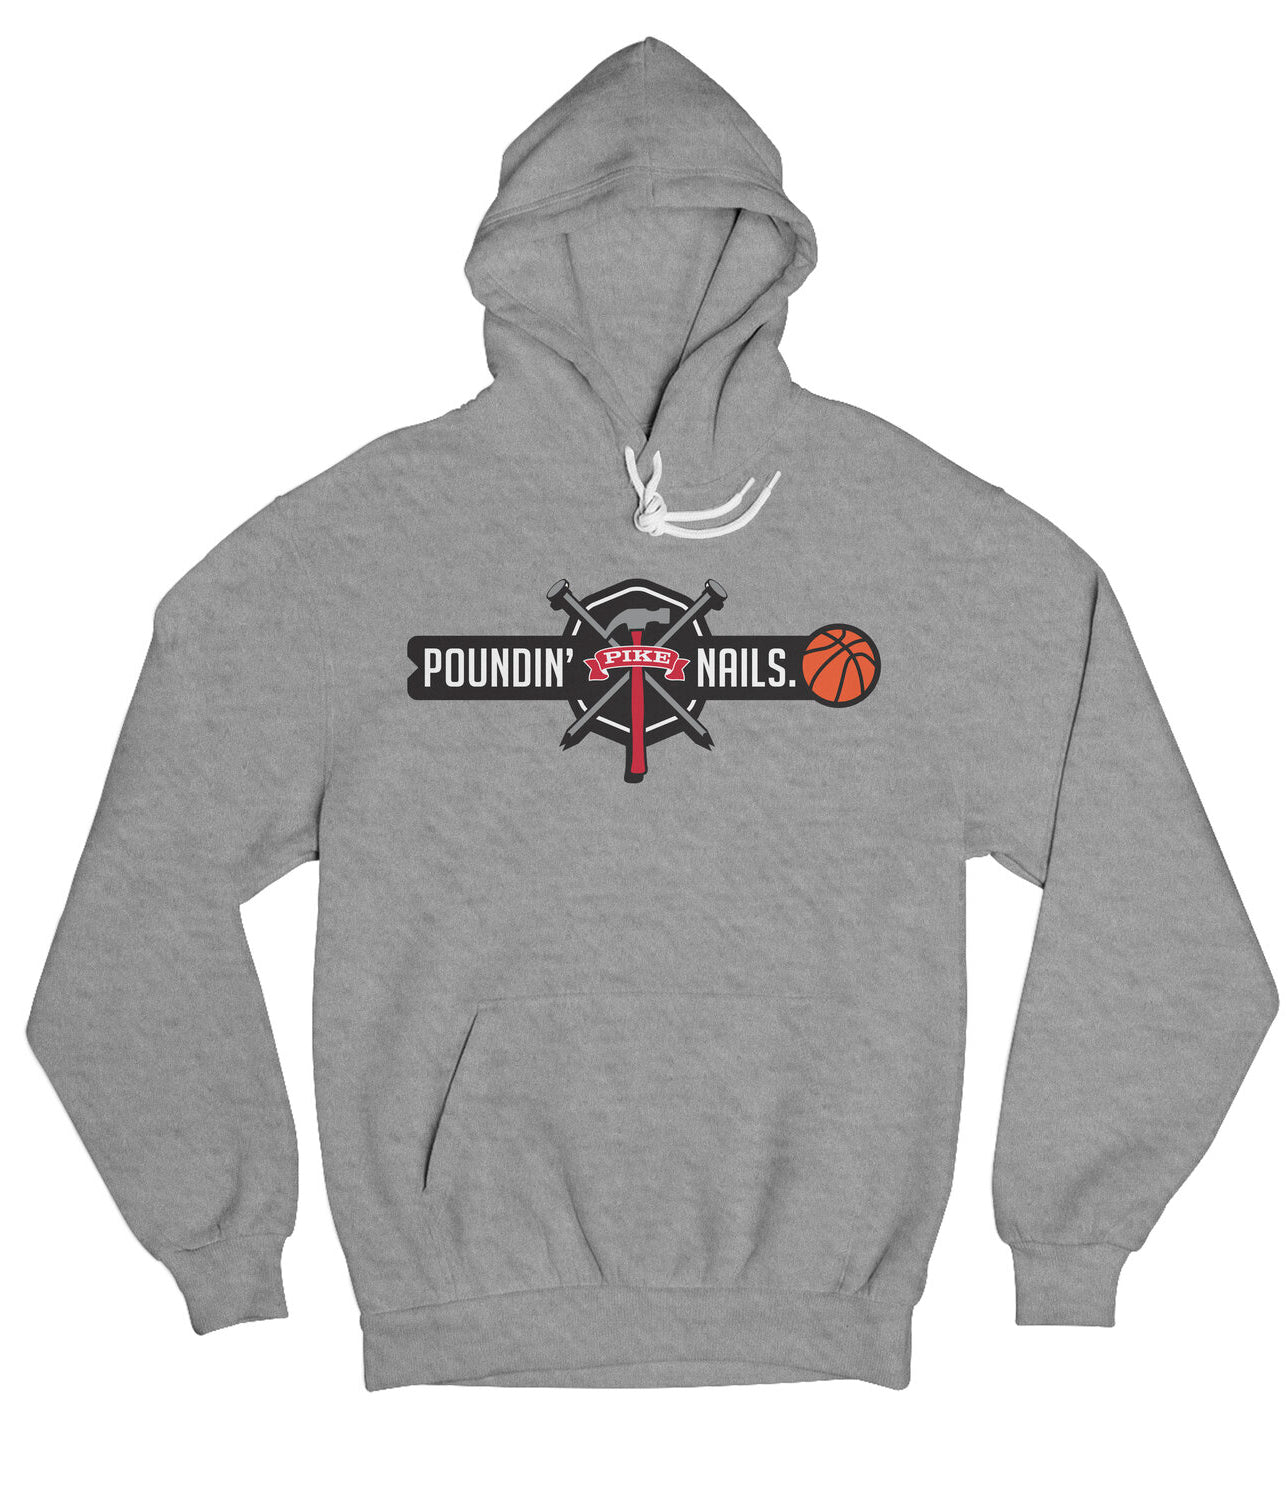 Poundin Nails Hoodie